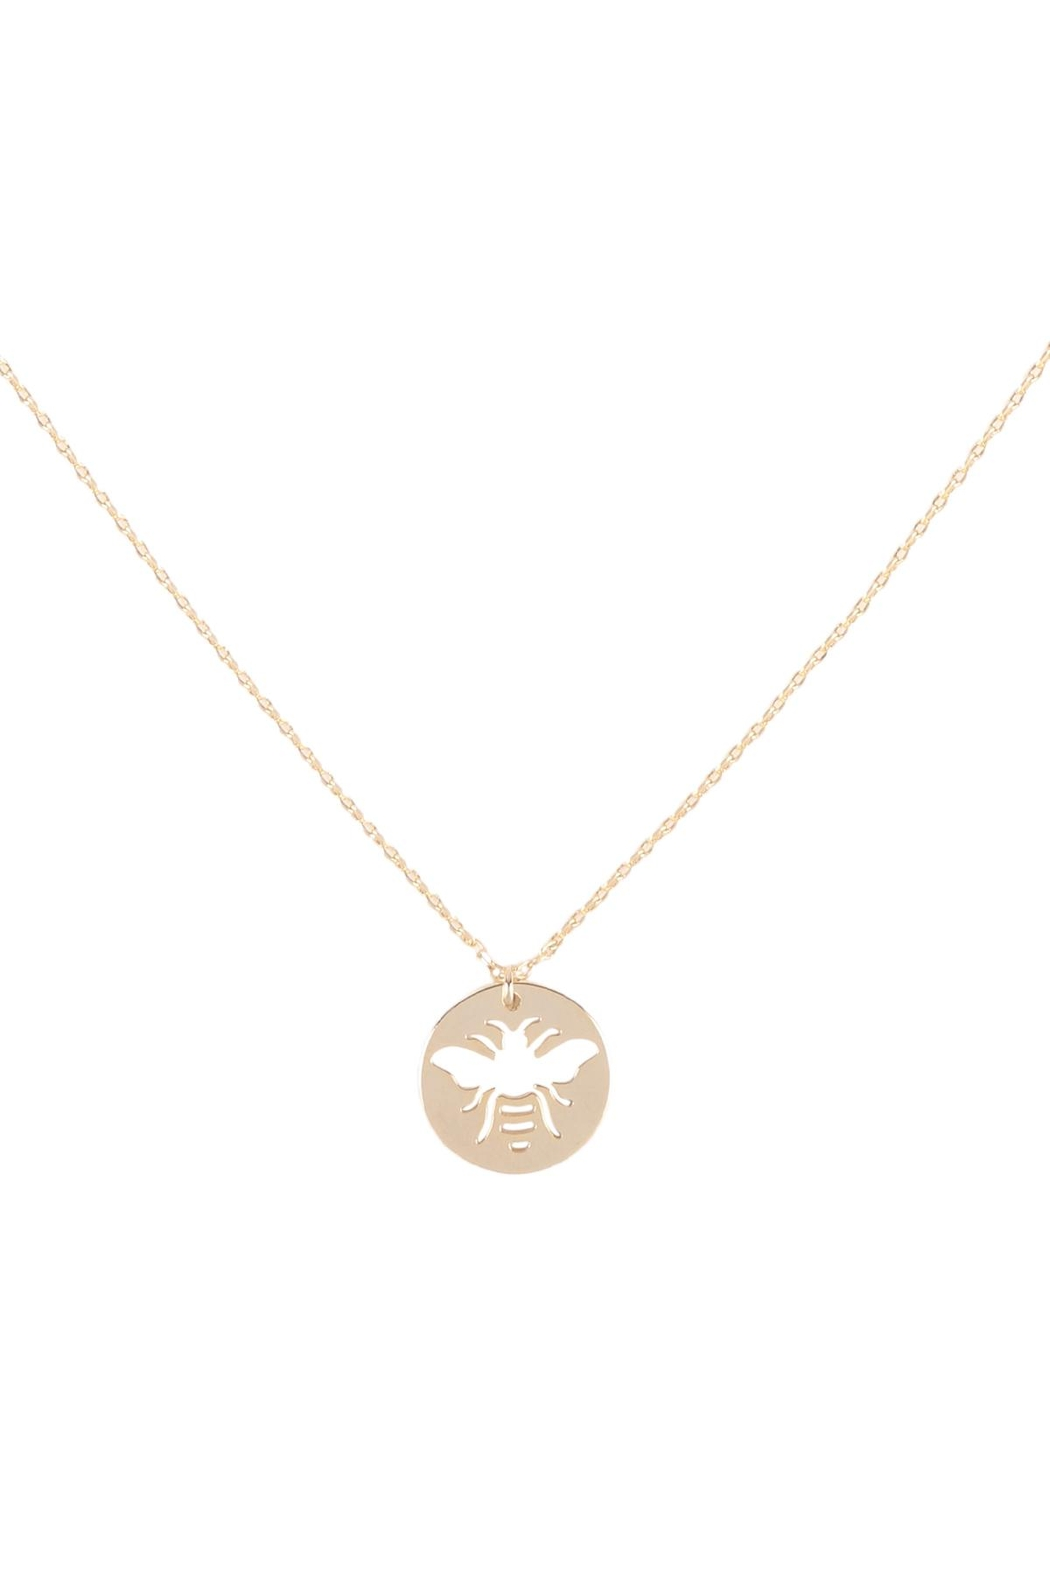 Riah Fashion Brass-Bee-Cutout-Coin-Pendant-Necklace - Main Image